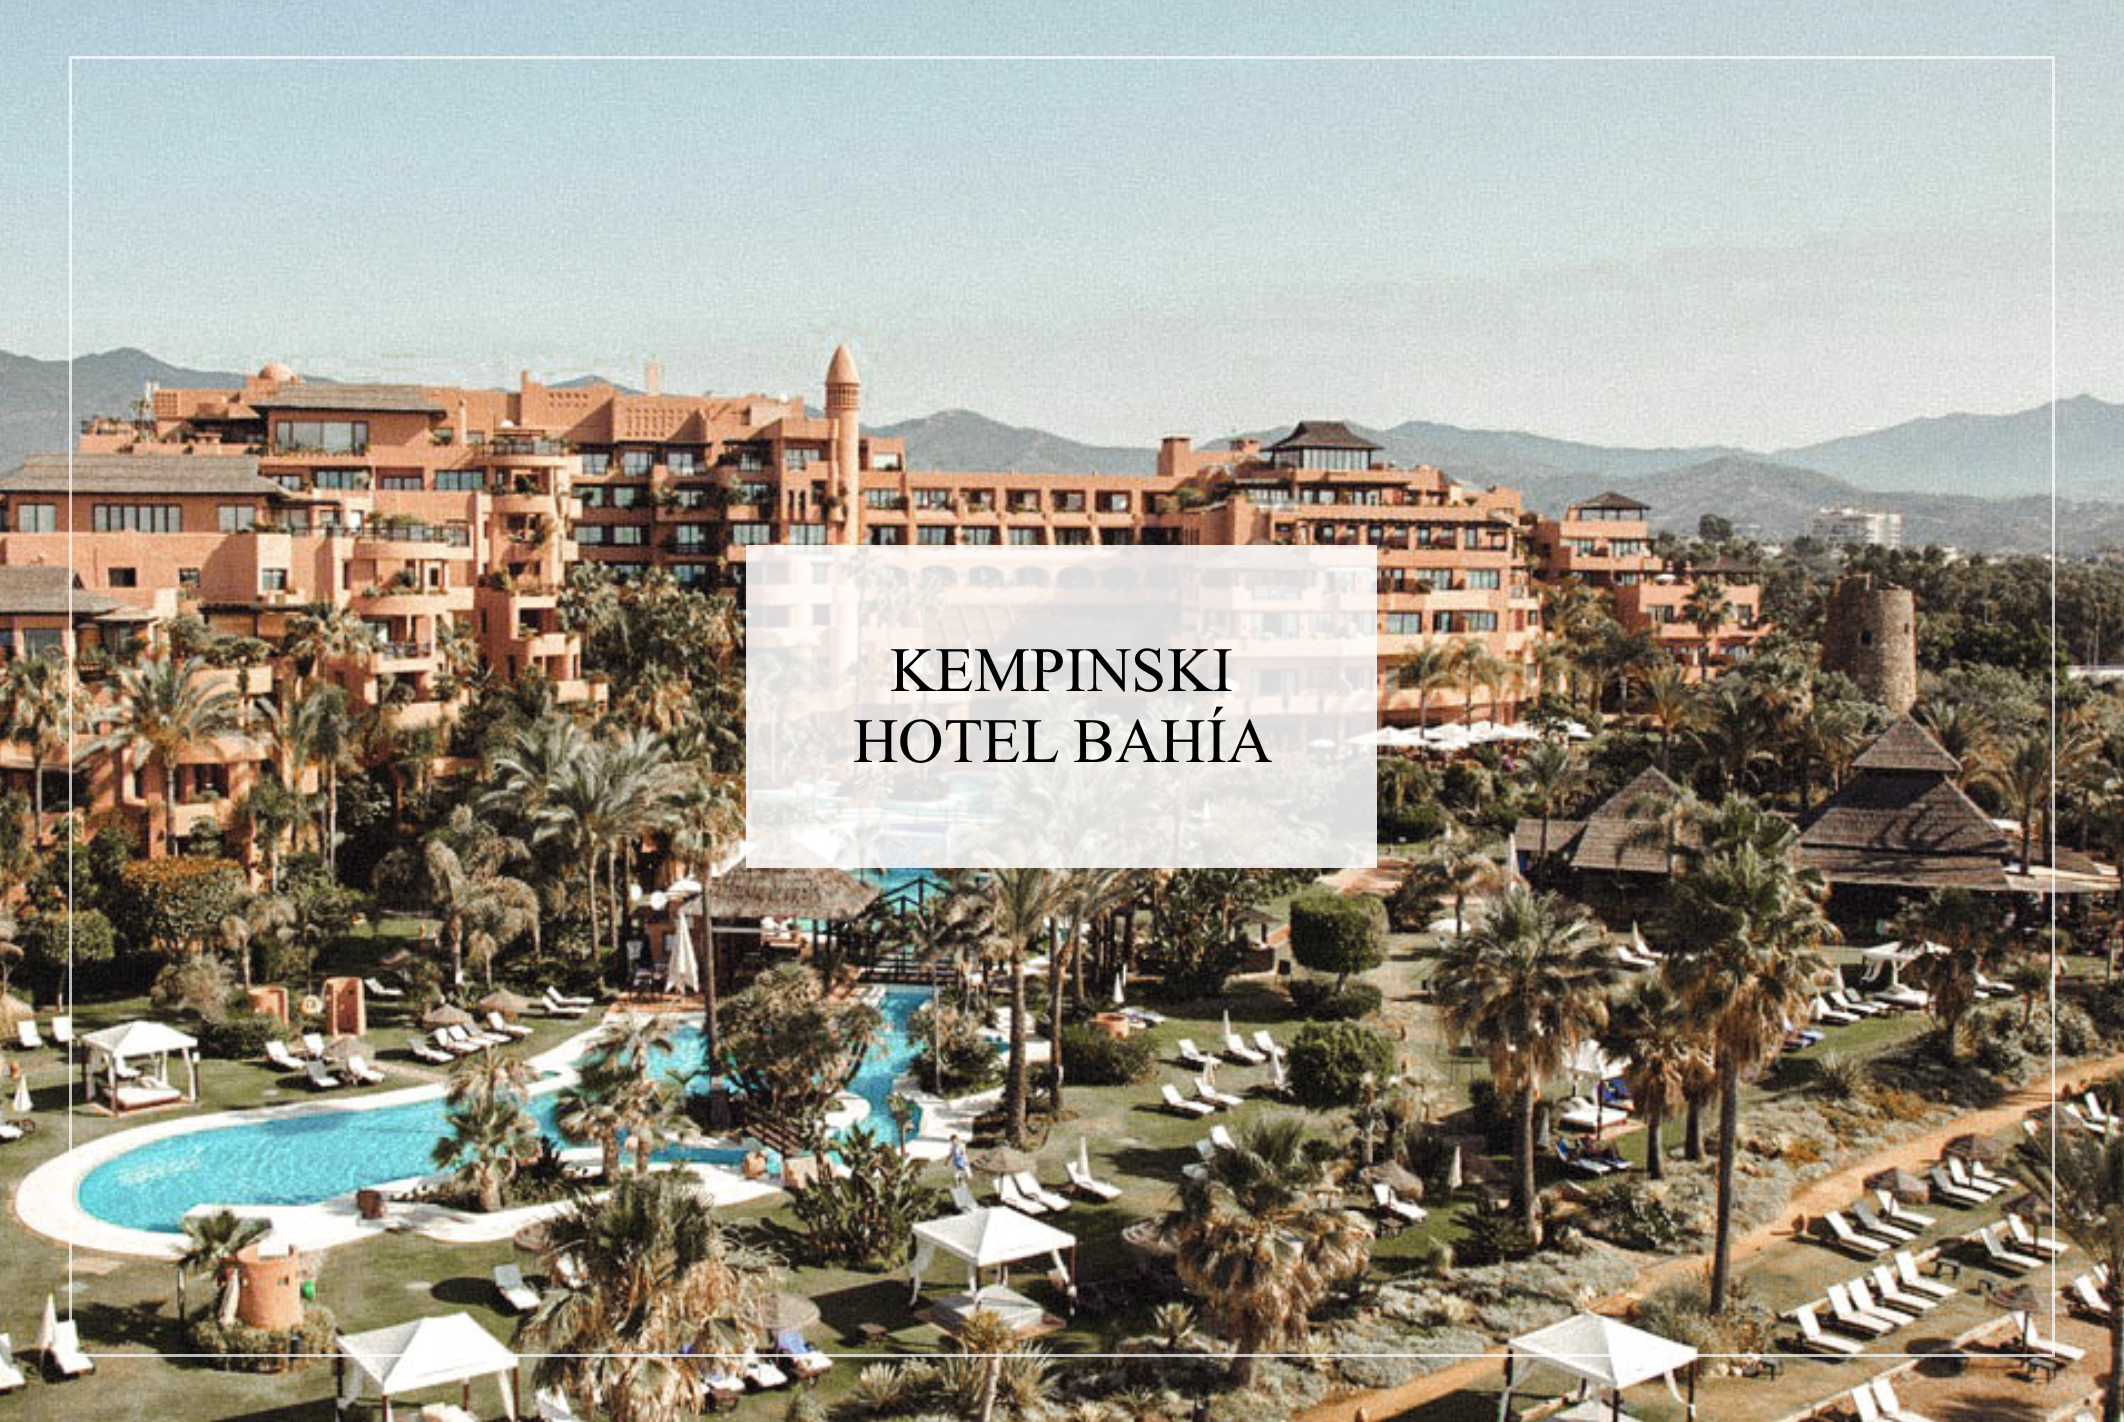 kempinski hotel Bahia Marbella Estepona few days in